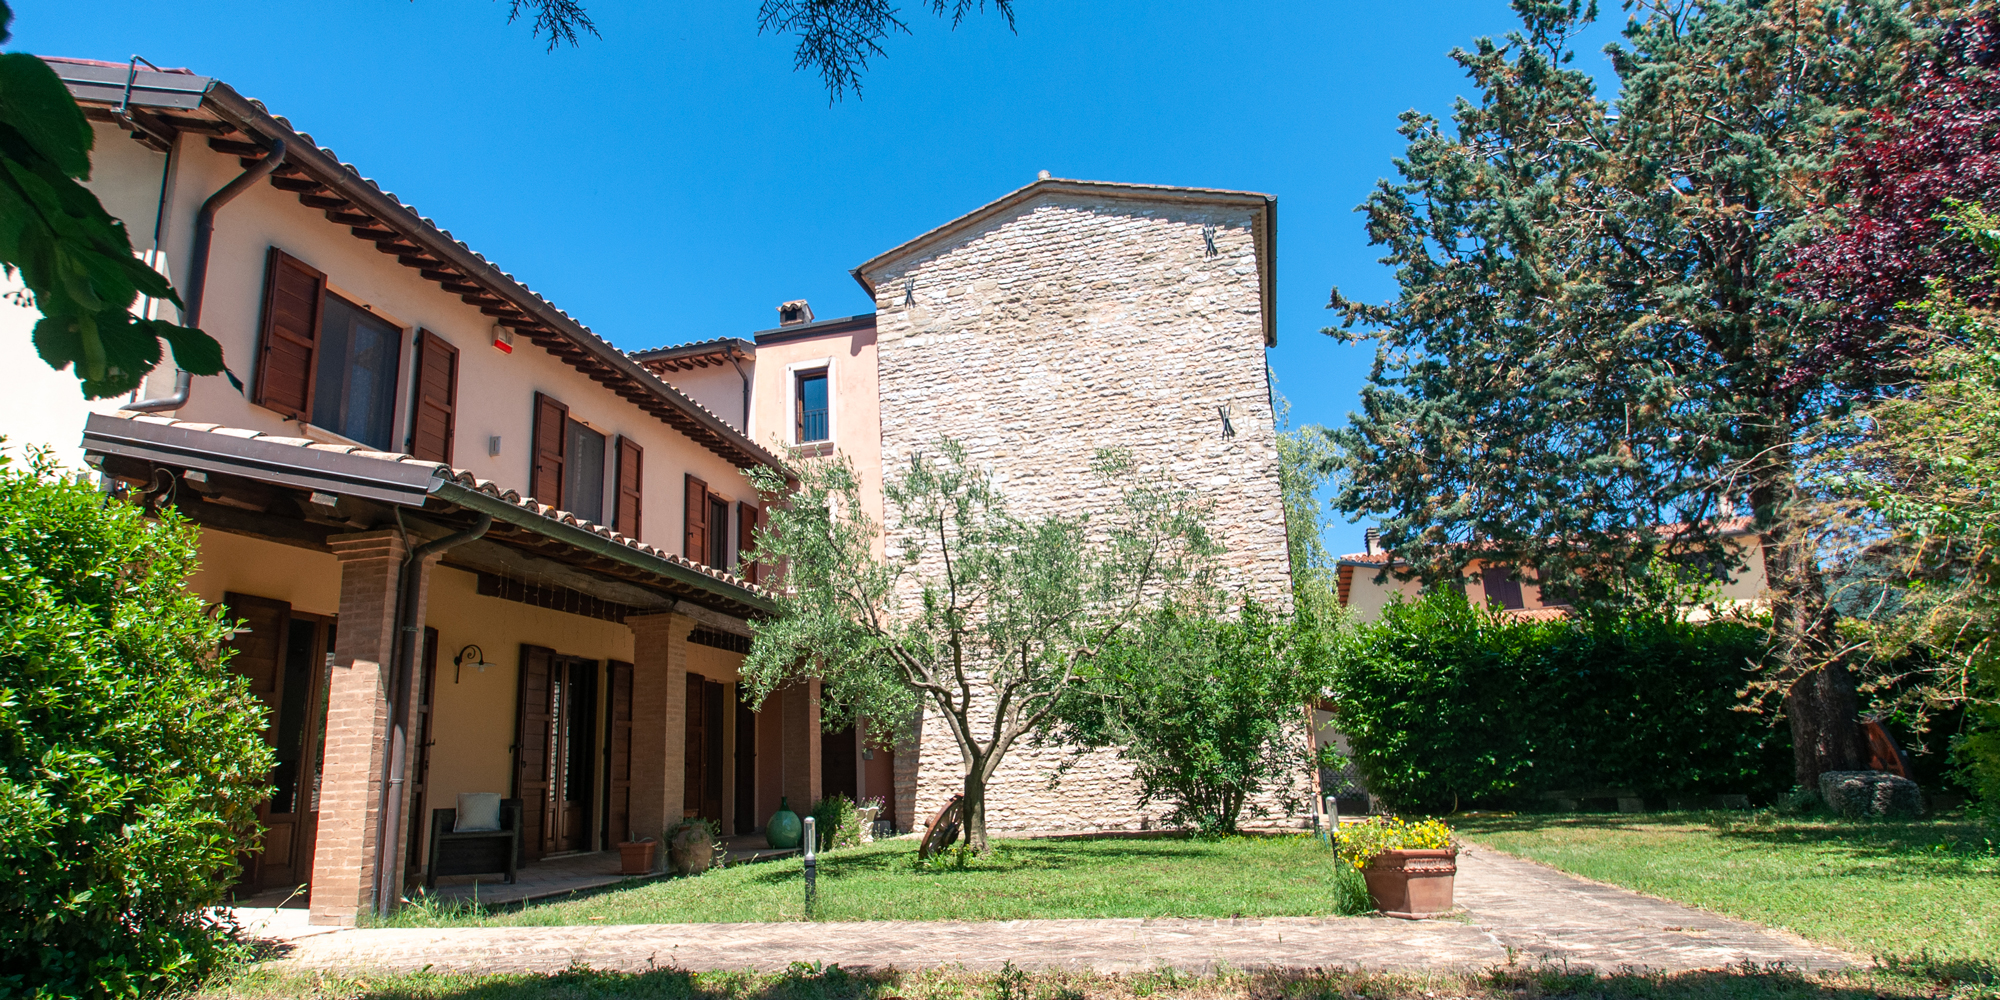 761 – Farmhouse with Ancient Tower of 1200 restored